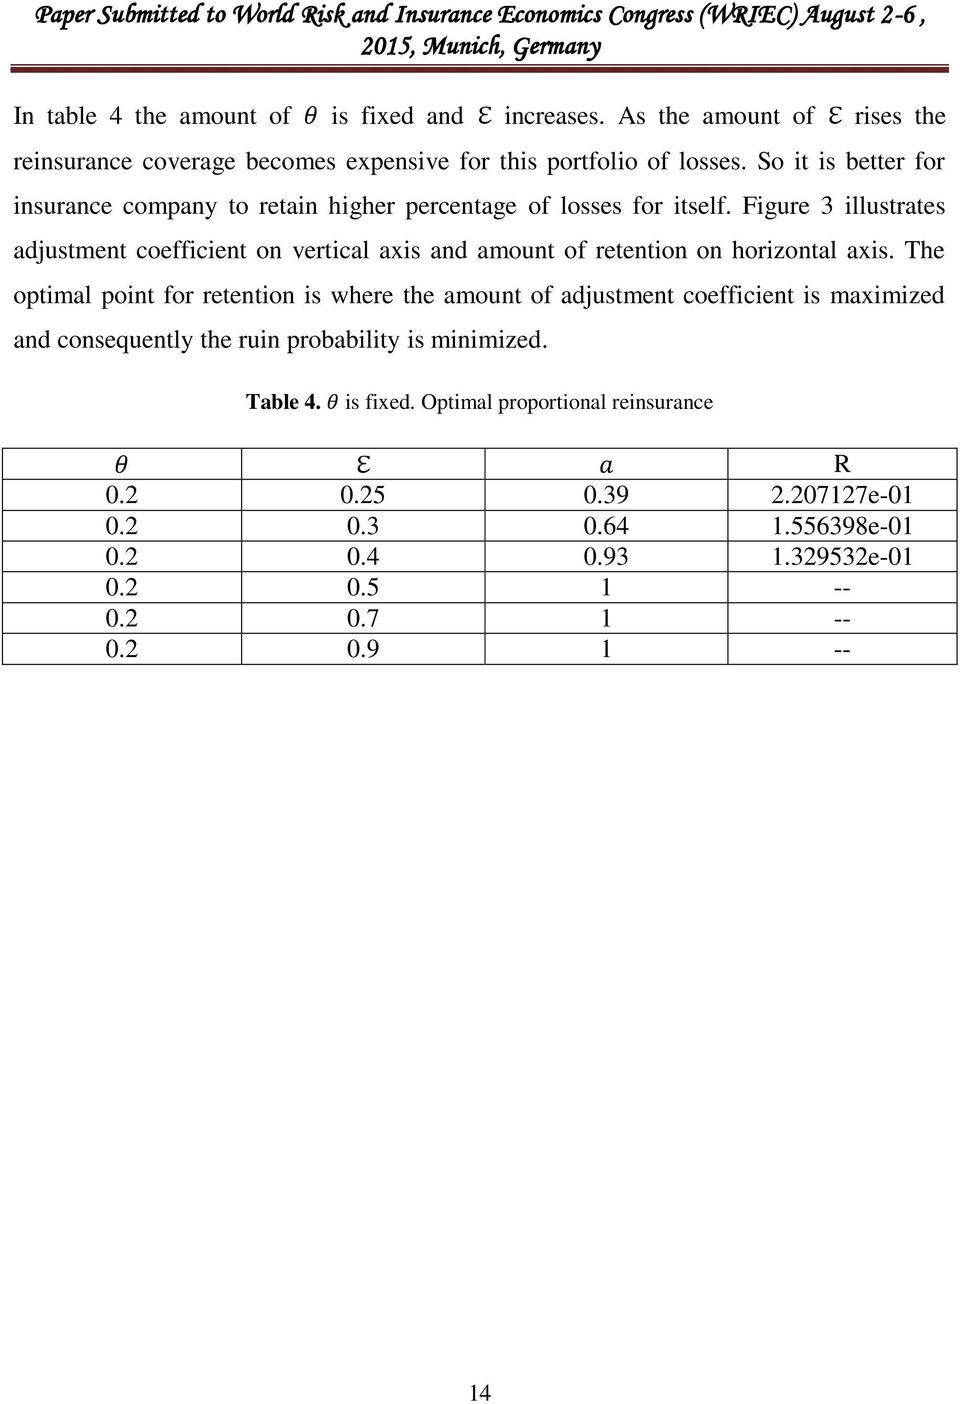 Figure 3 illustrates adjustment coefficient on vertical axis and amount of retention on horizontal axis.